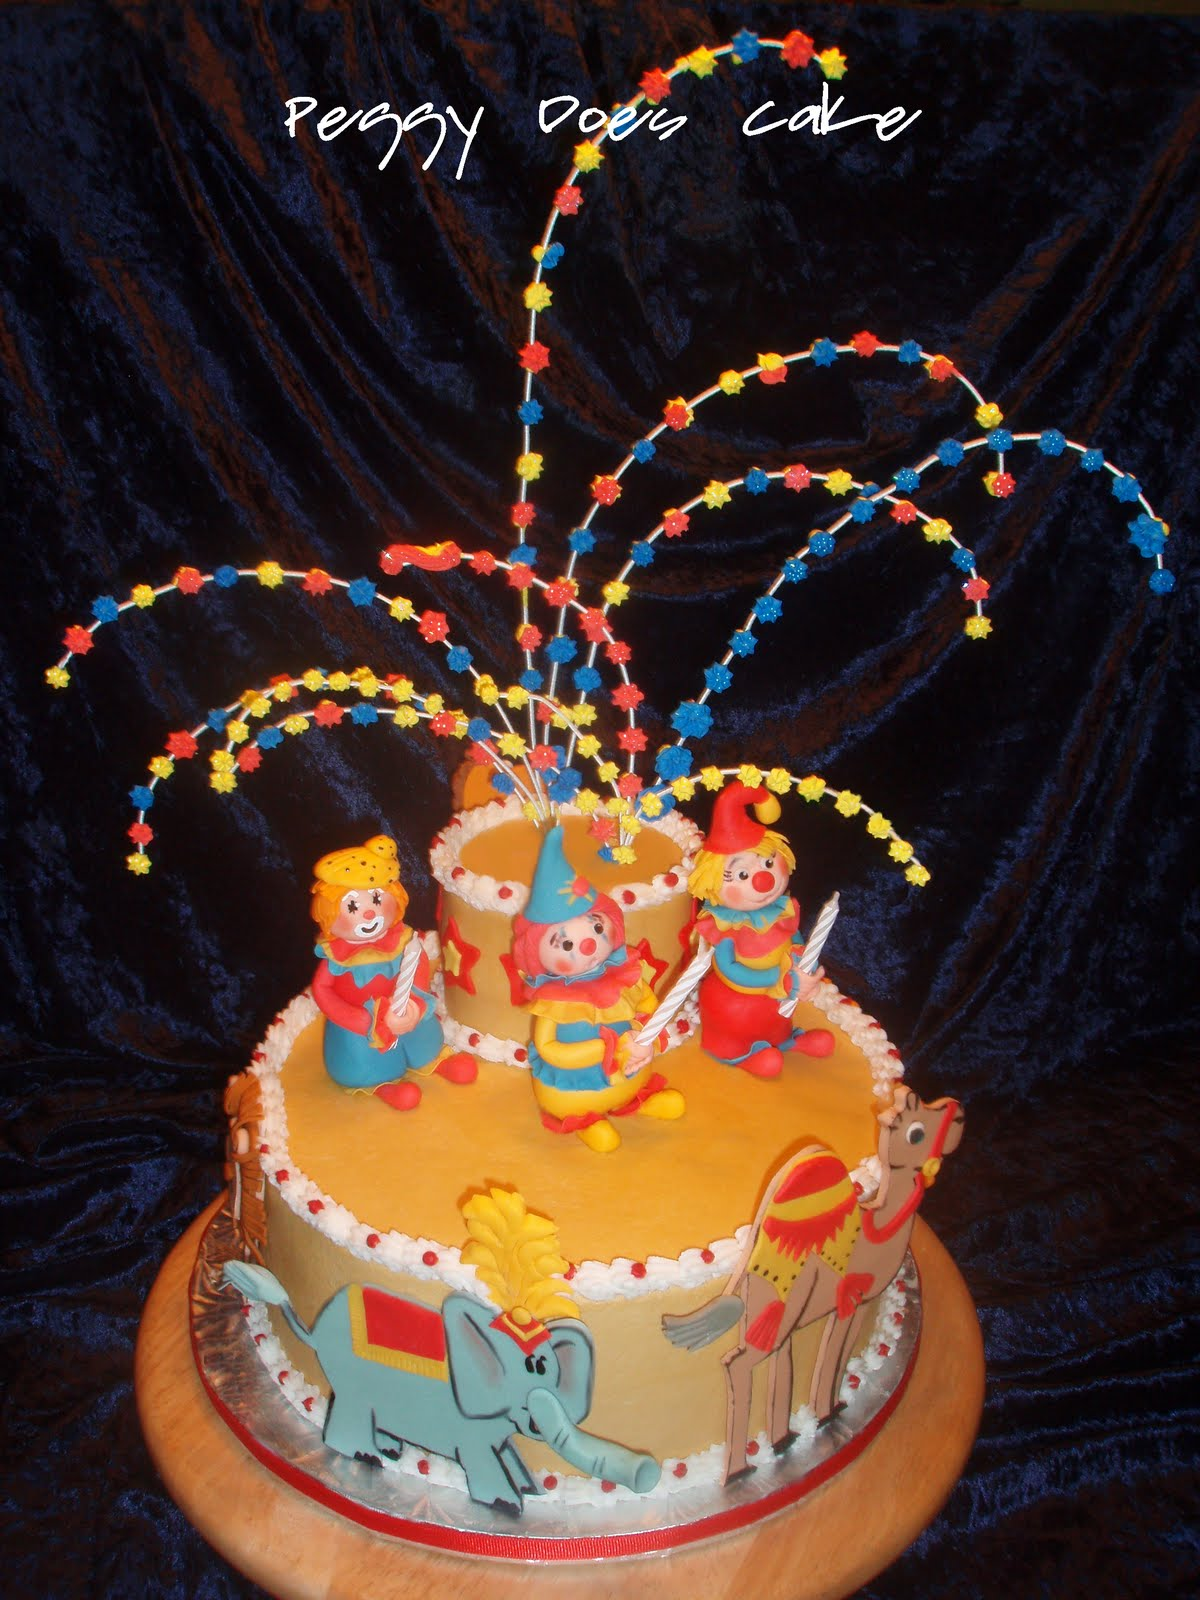 Peggy Does Cake Retts Circus Birthday Cake Click any photo to